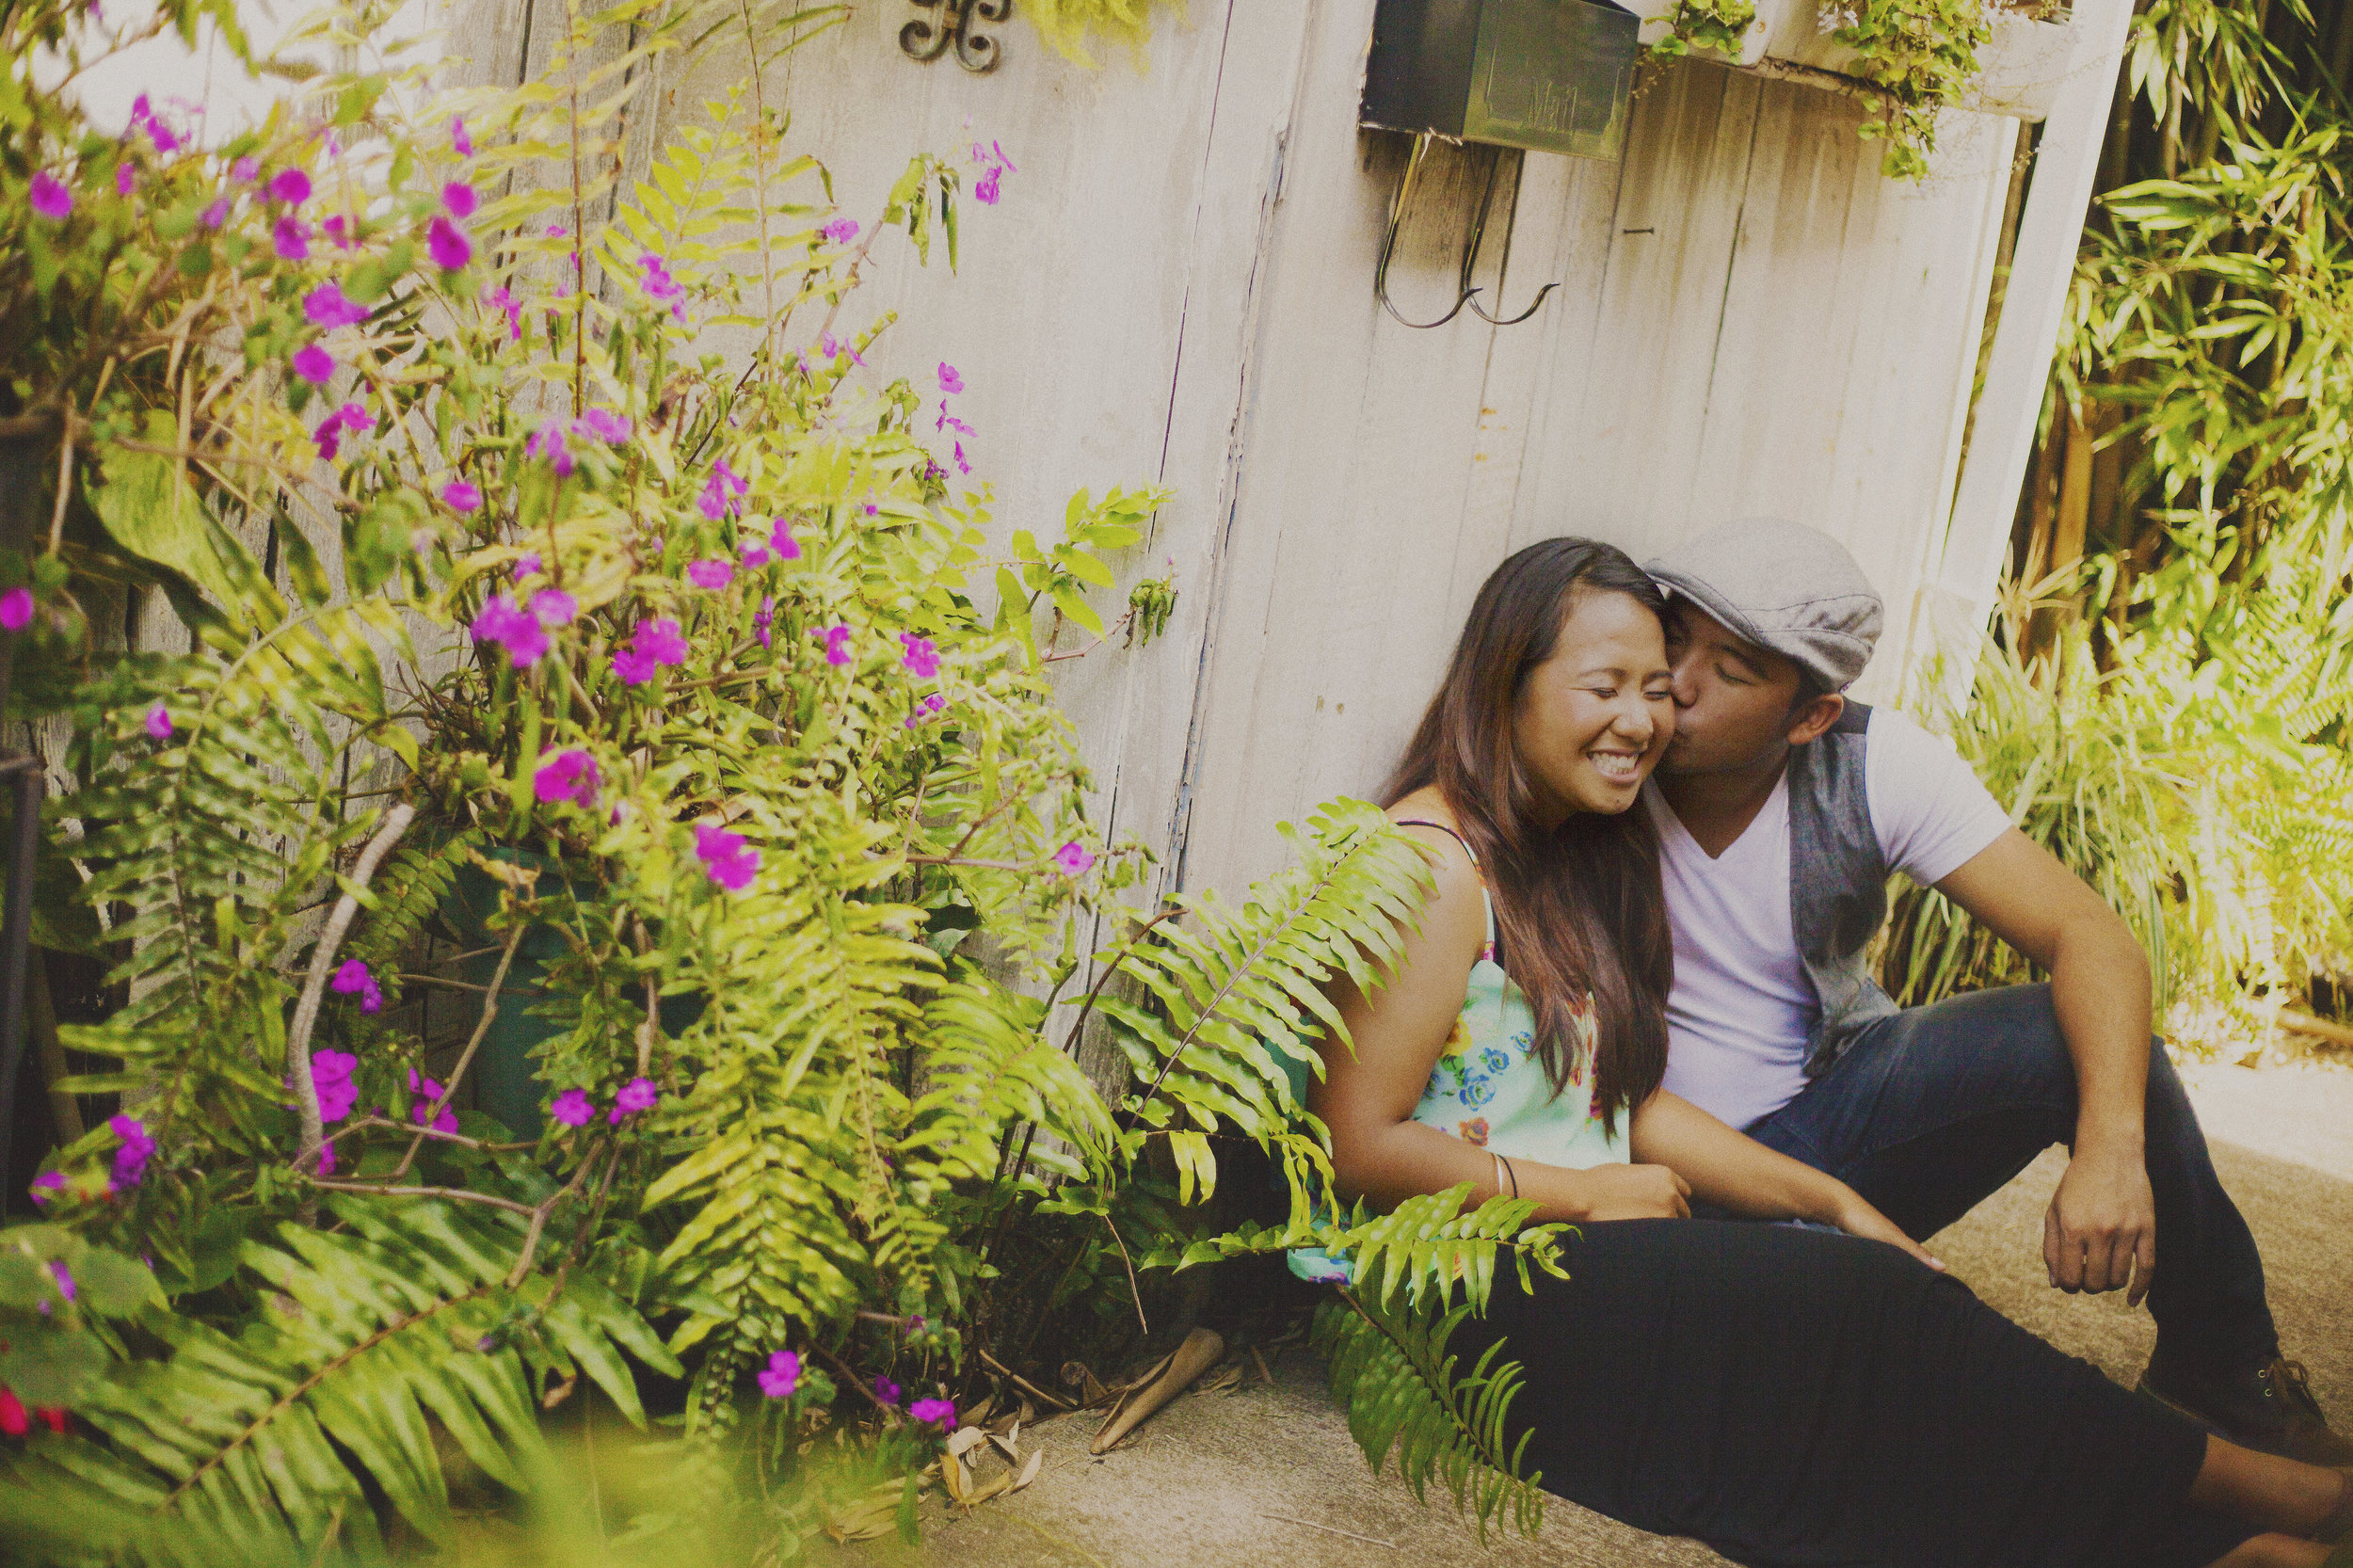 angie-diaz-photography-maui-upcountry-engagement-03.jpg